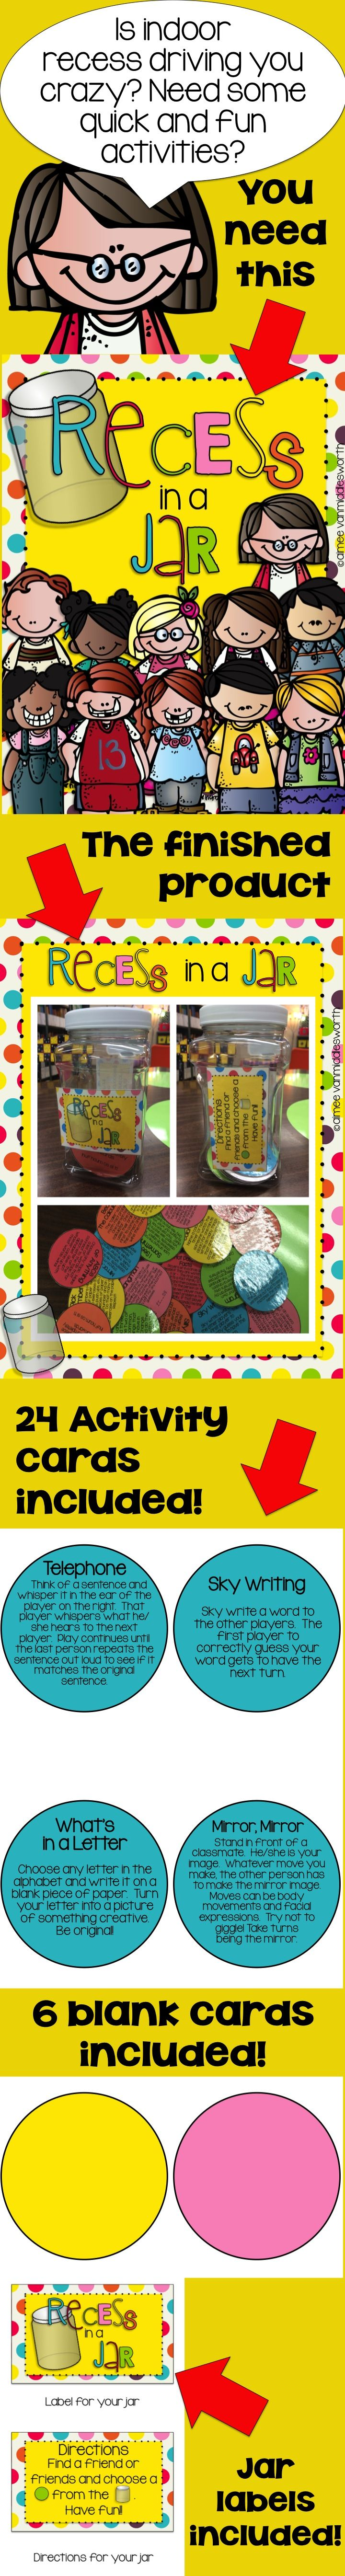 178 best images about Preschool Movement on Pinterest | Parachutes ...